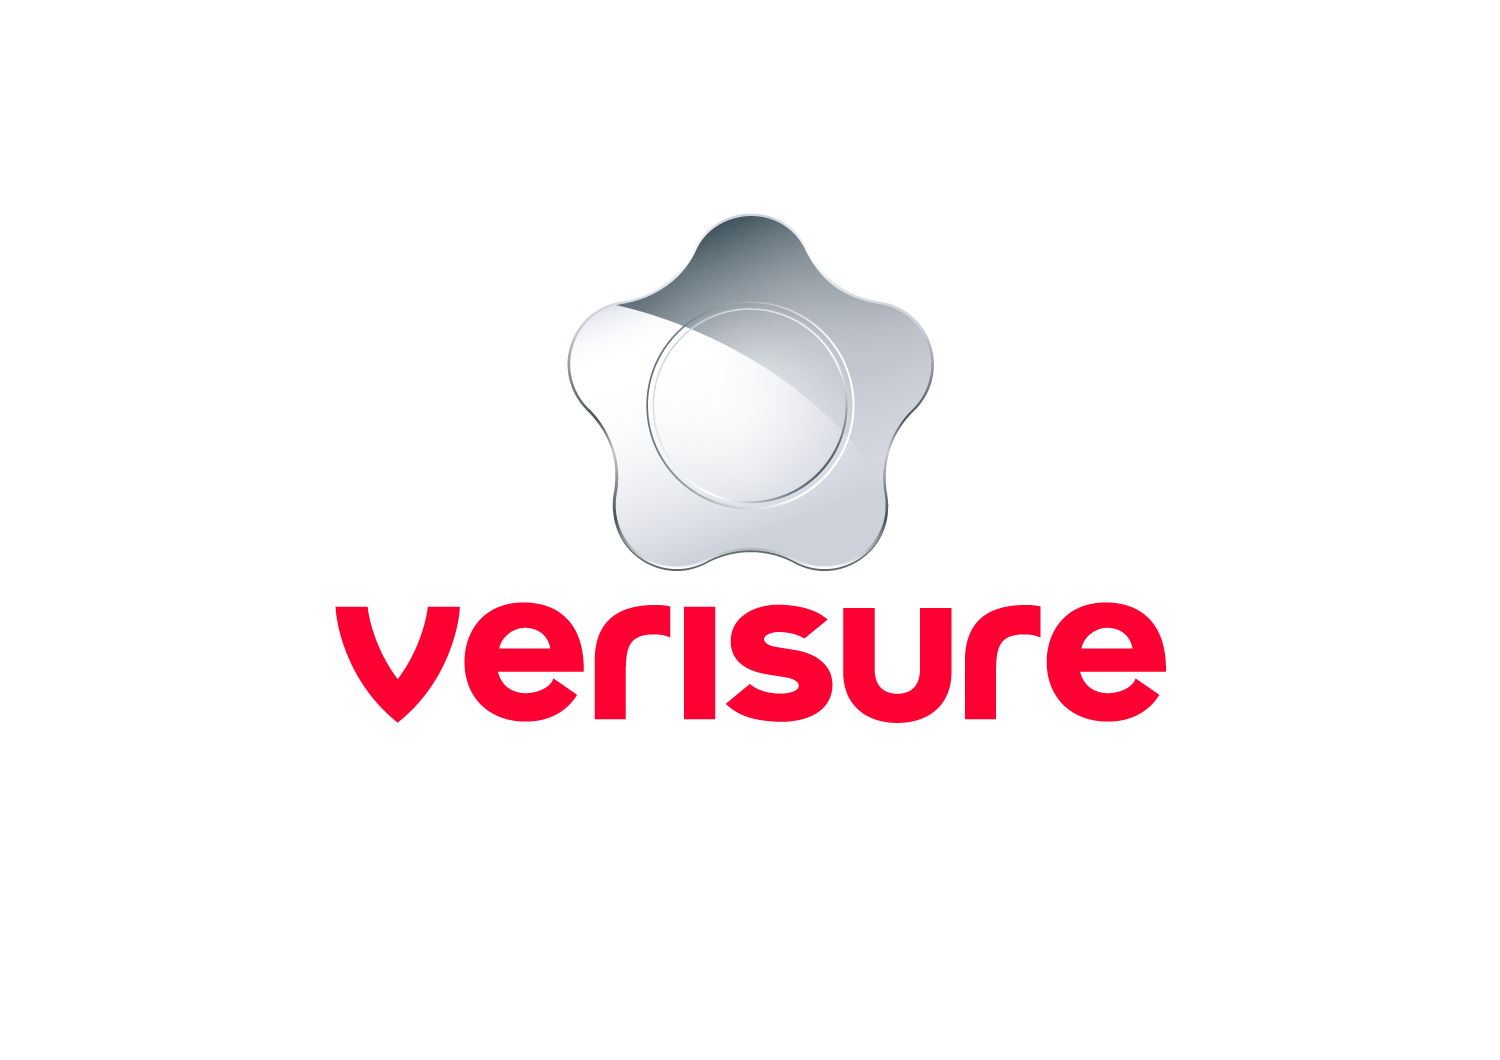 Logo de VERISURE